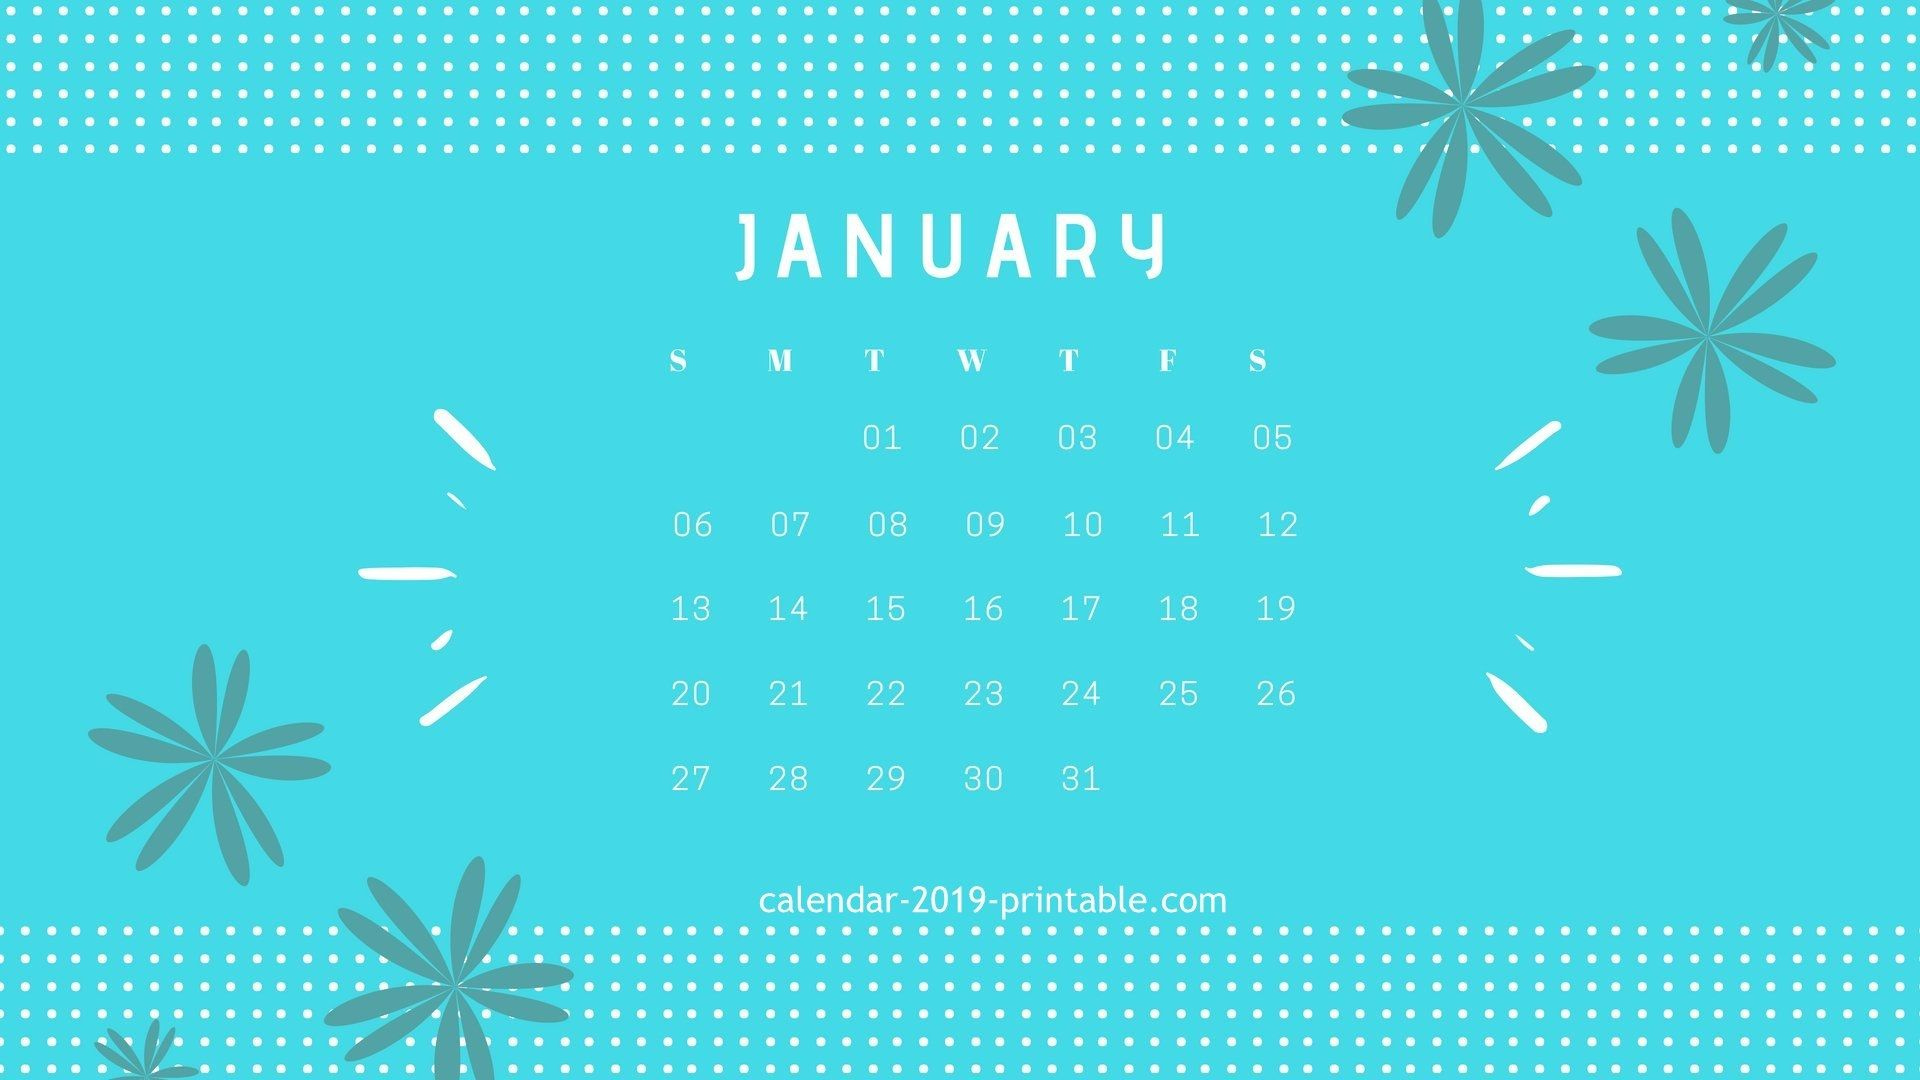 Cute January 2019 Calendar Background Wallpaper january 2019 calendar desktop wallpapers calendar 2019